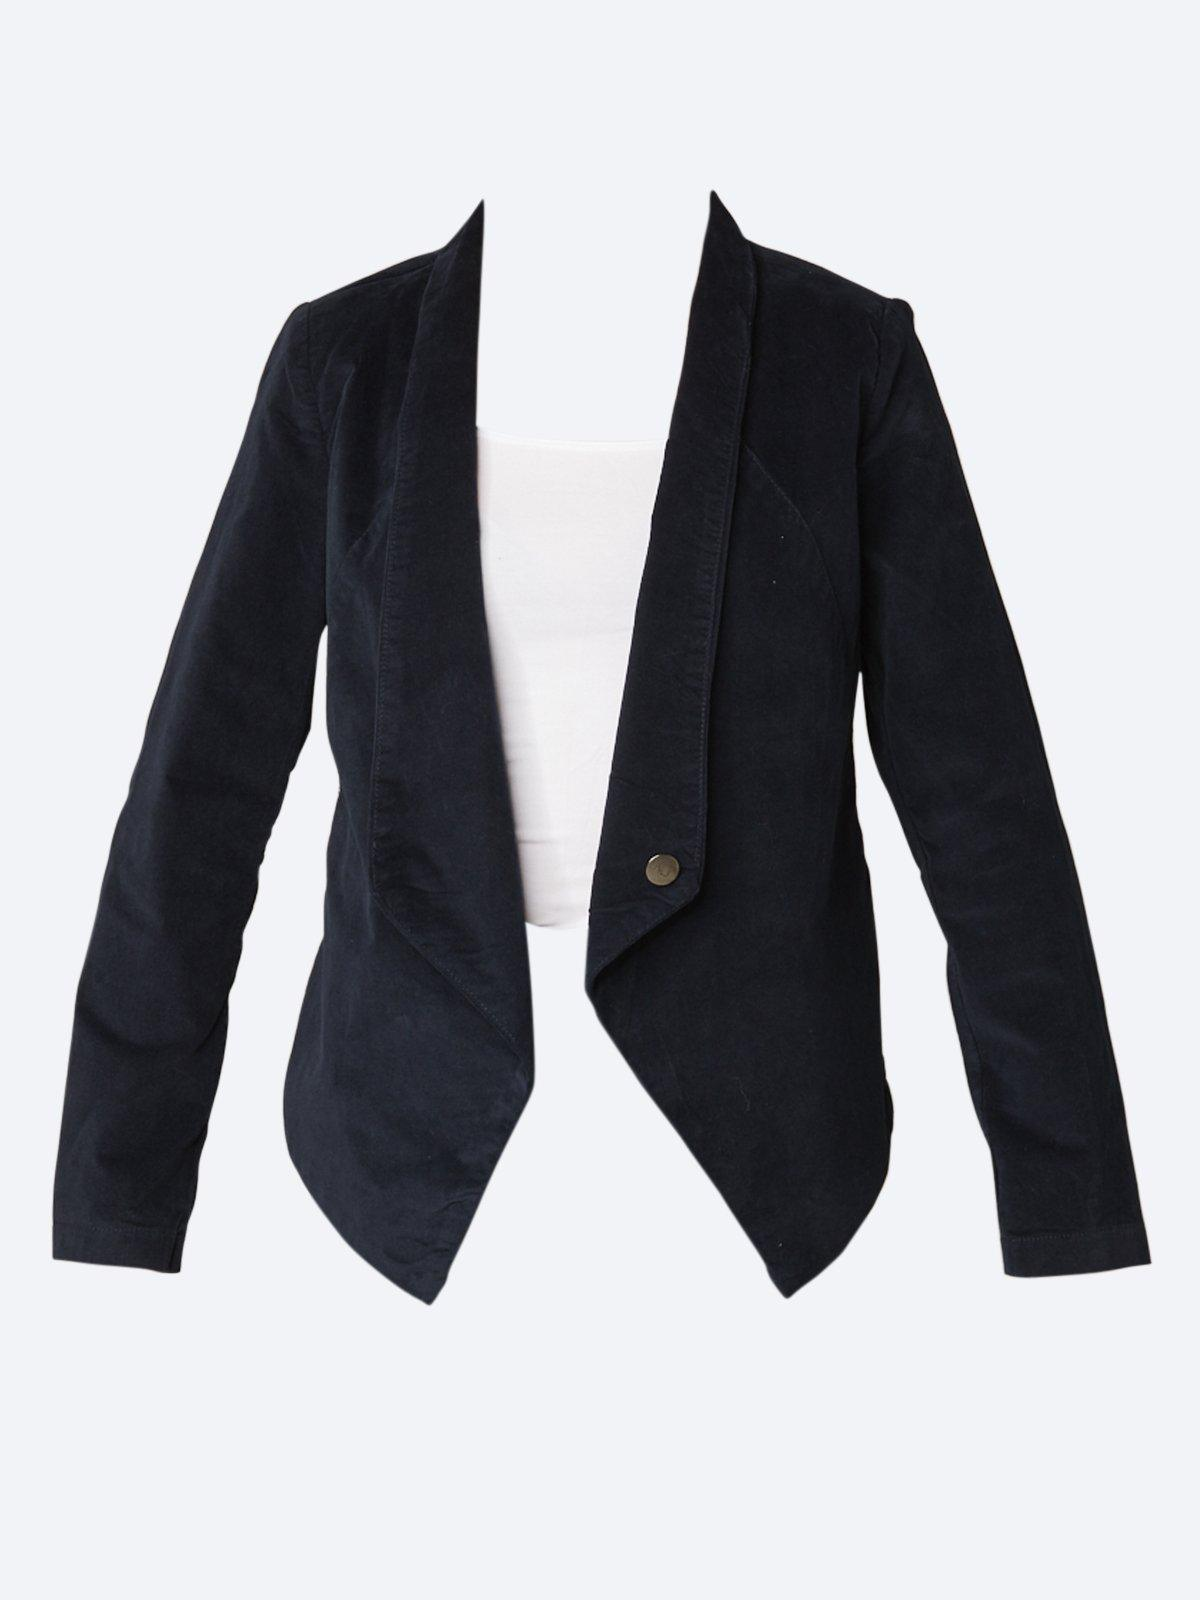 NEW LONDON SULLY VELVET JACKET